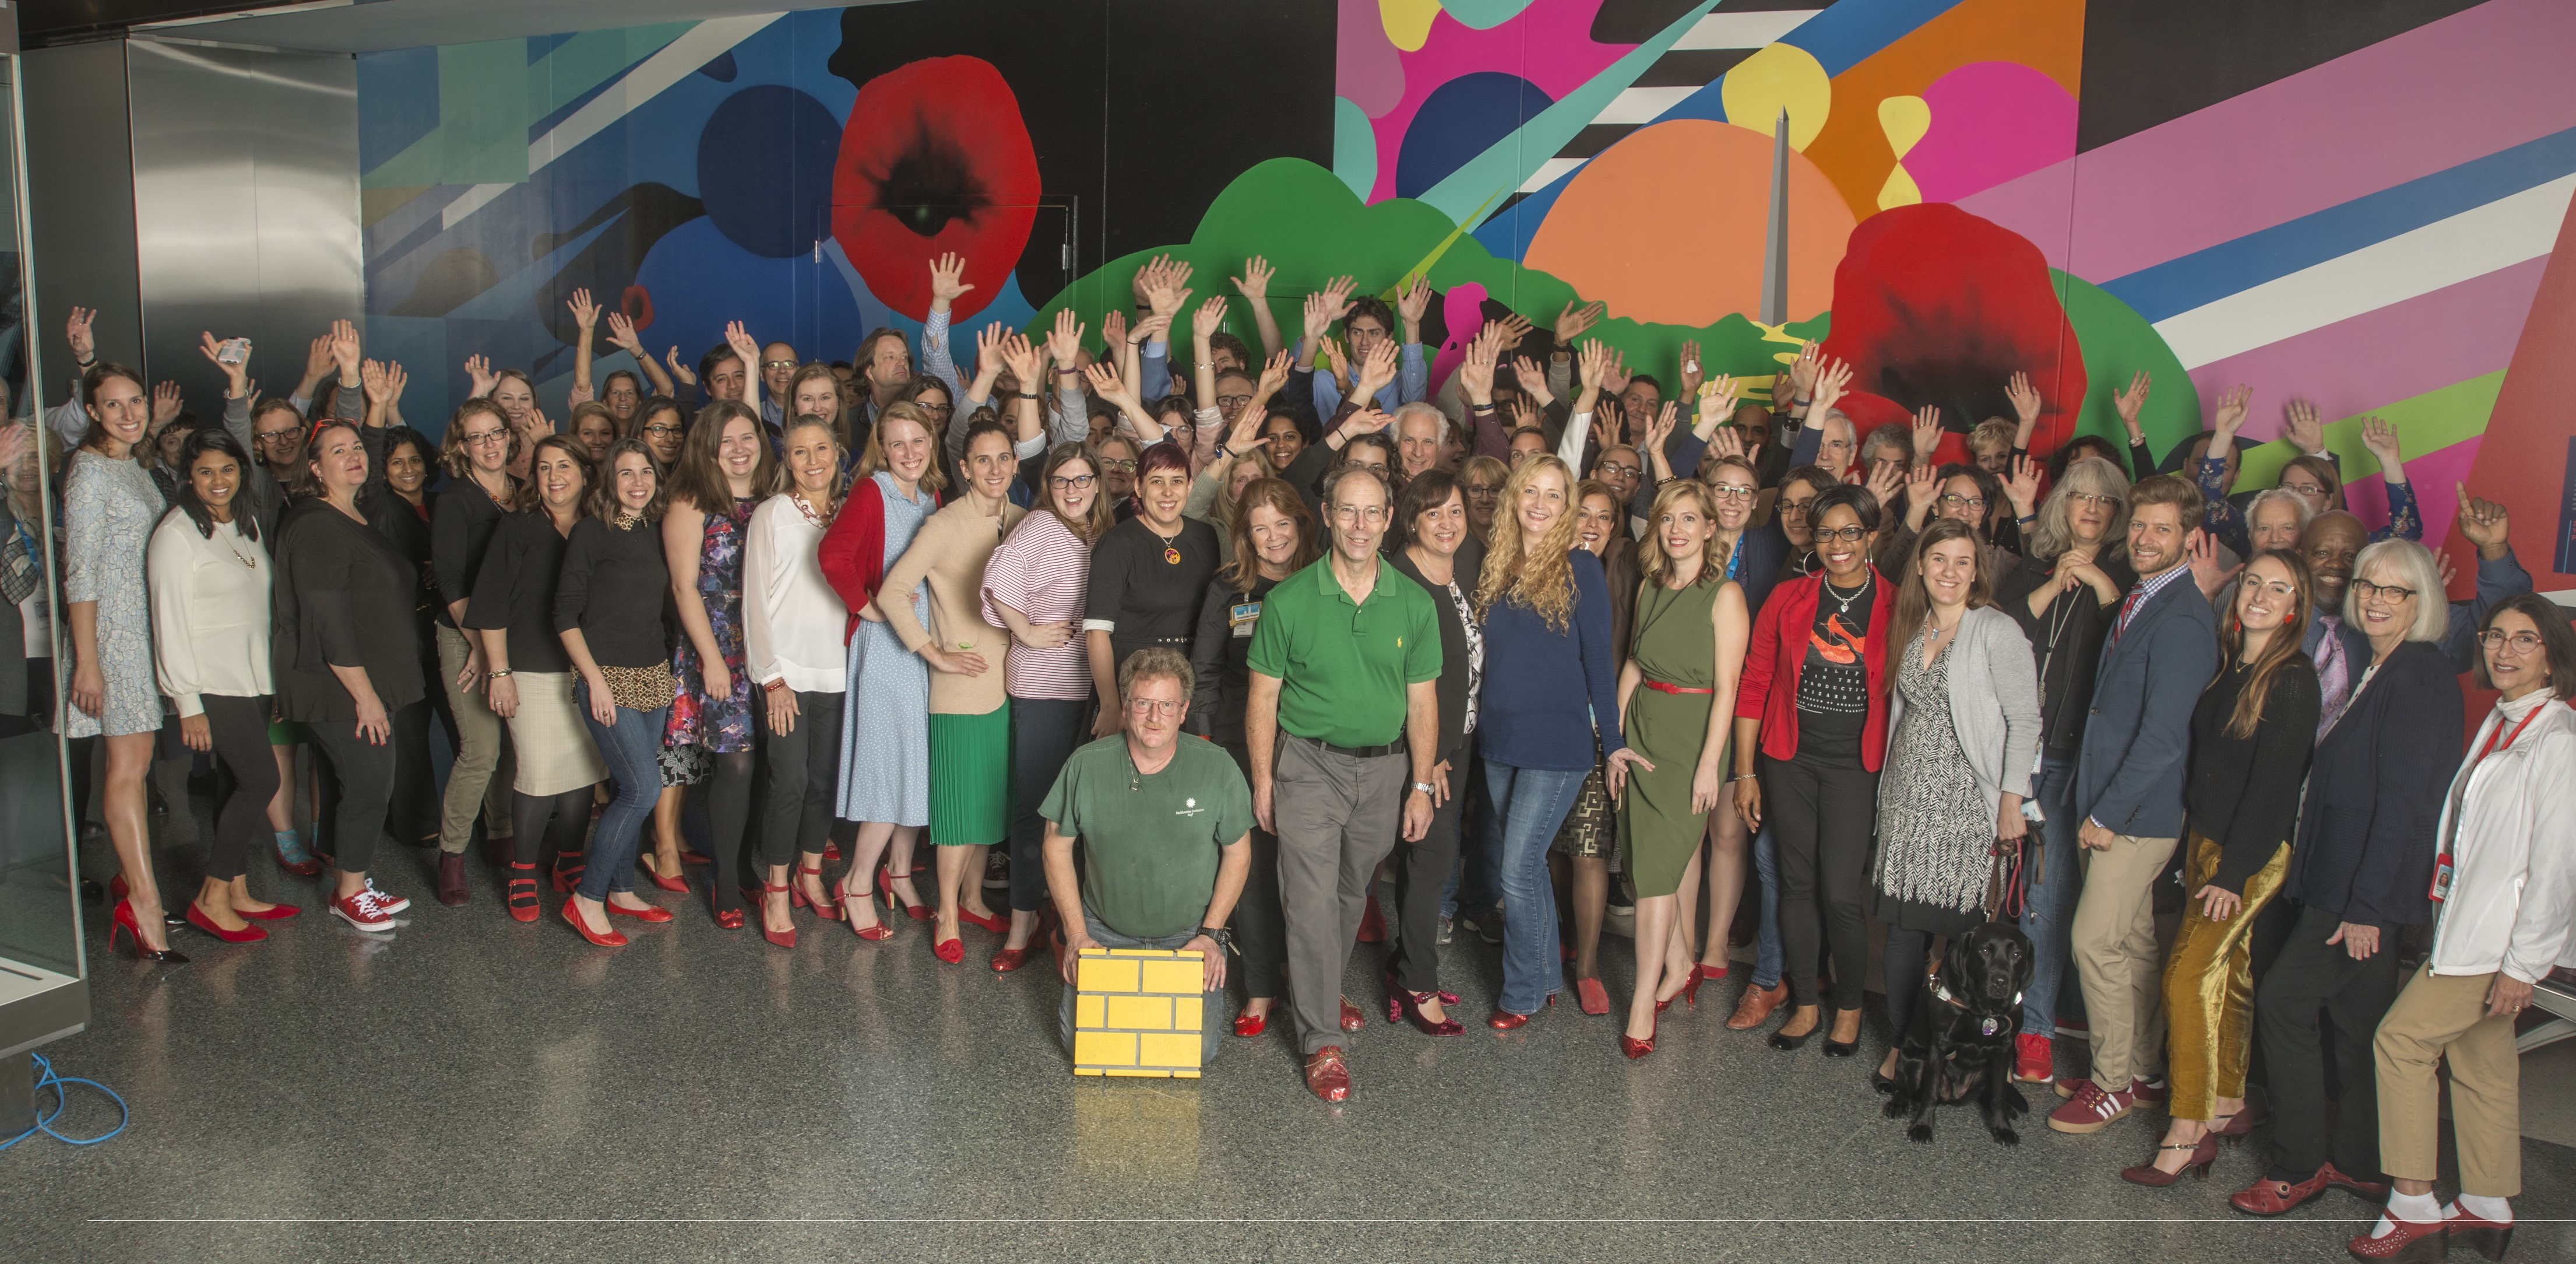 Group photo in front of a colorful mural. Many smiling staff members, most of them wearing red shoes. One in front has a section of prop yellow brick road.